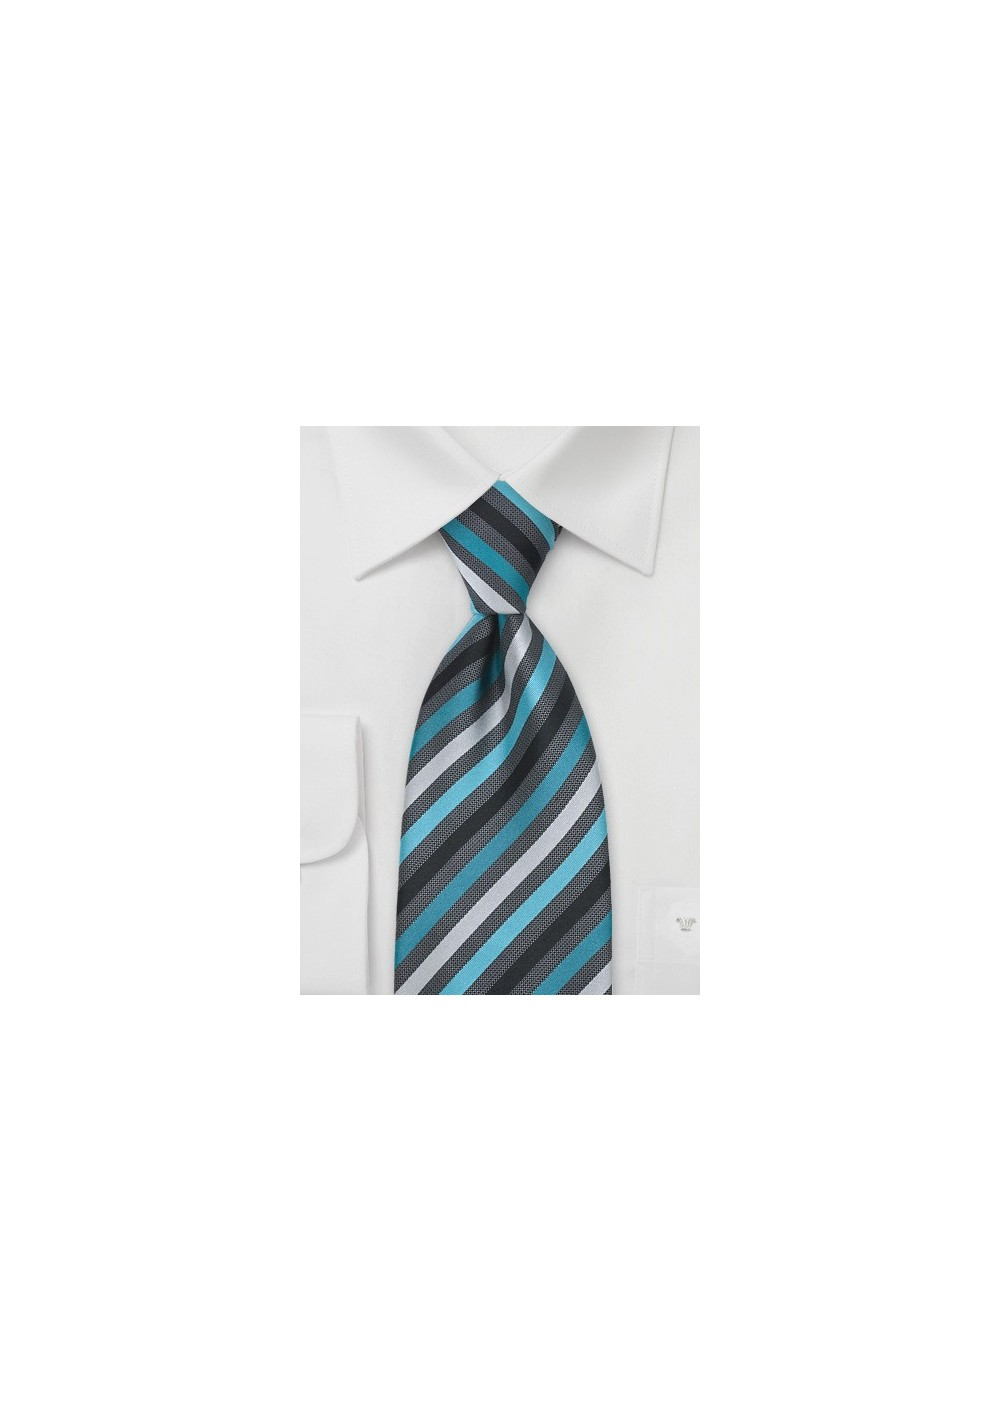 Teal and Gray Striped Tie